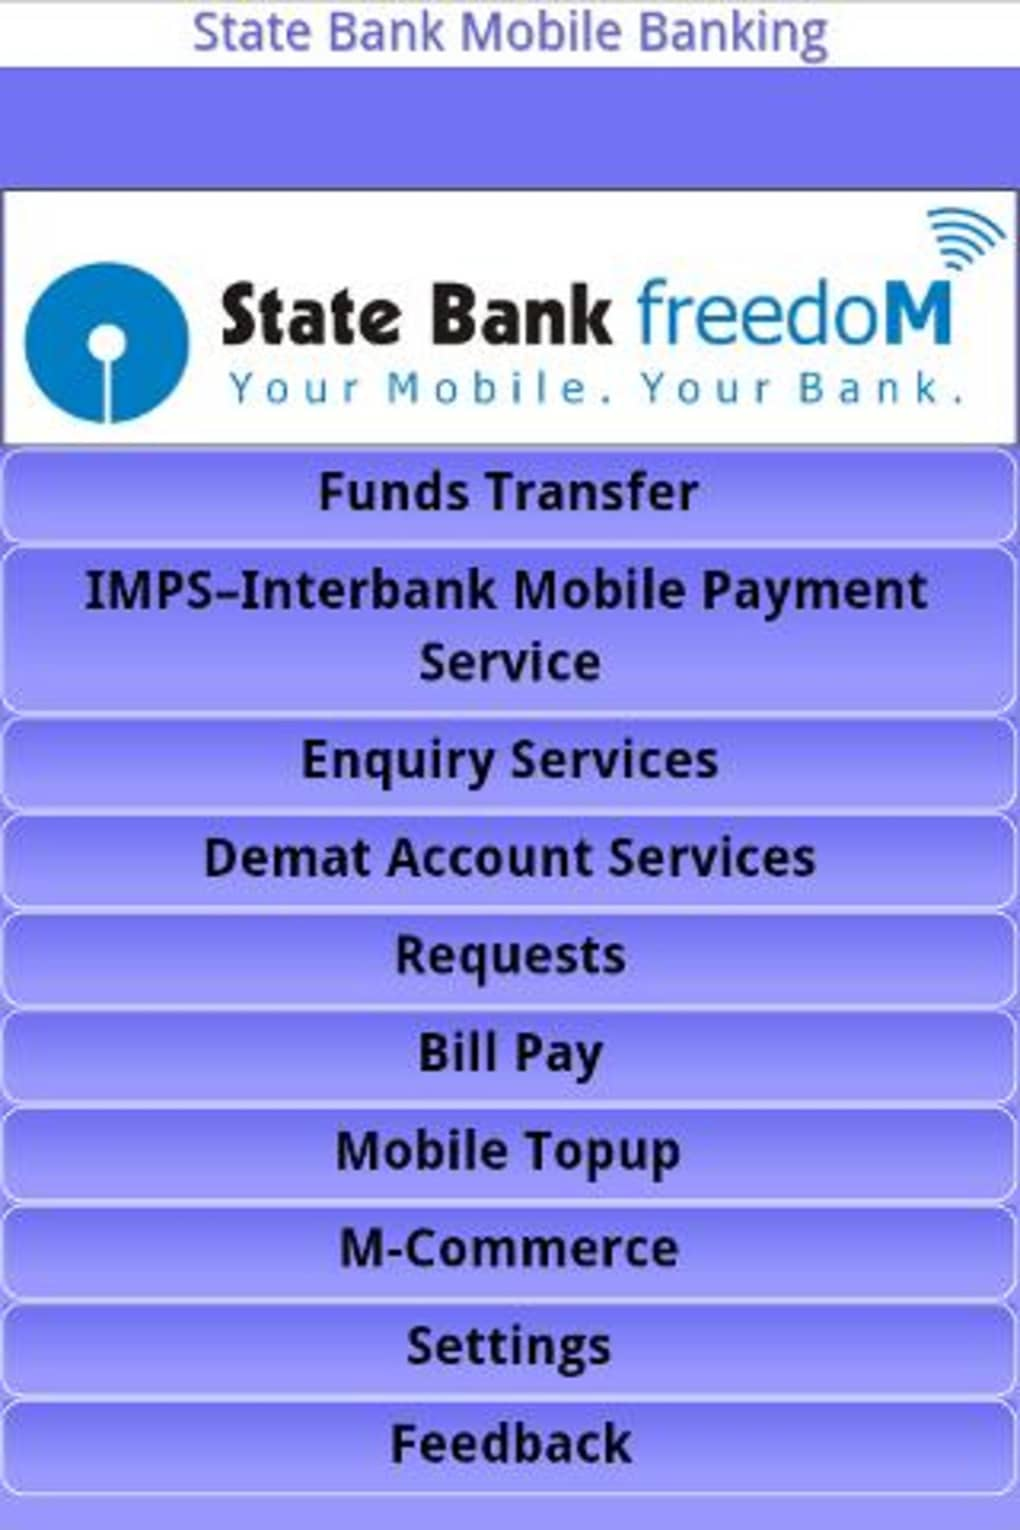 State bank freedom for windows 10 free download and software.